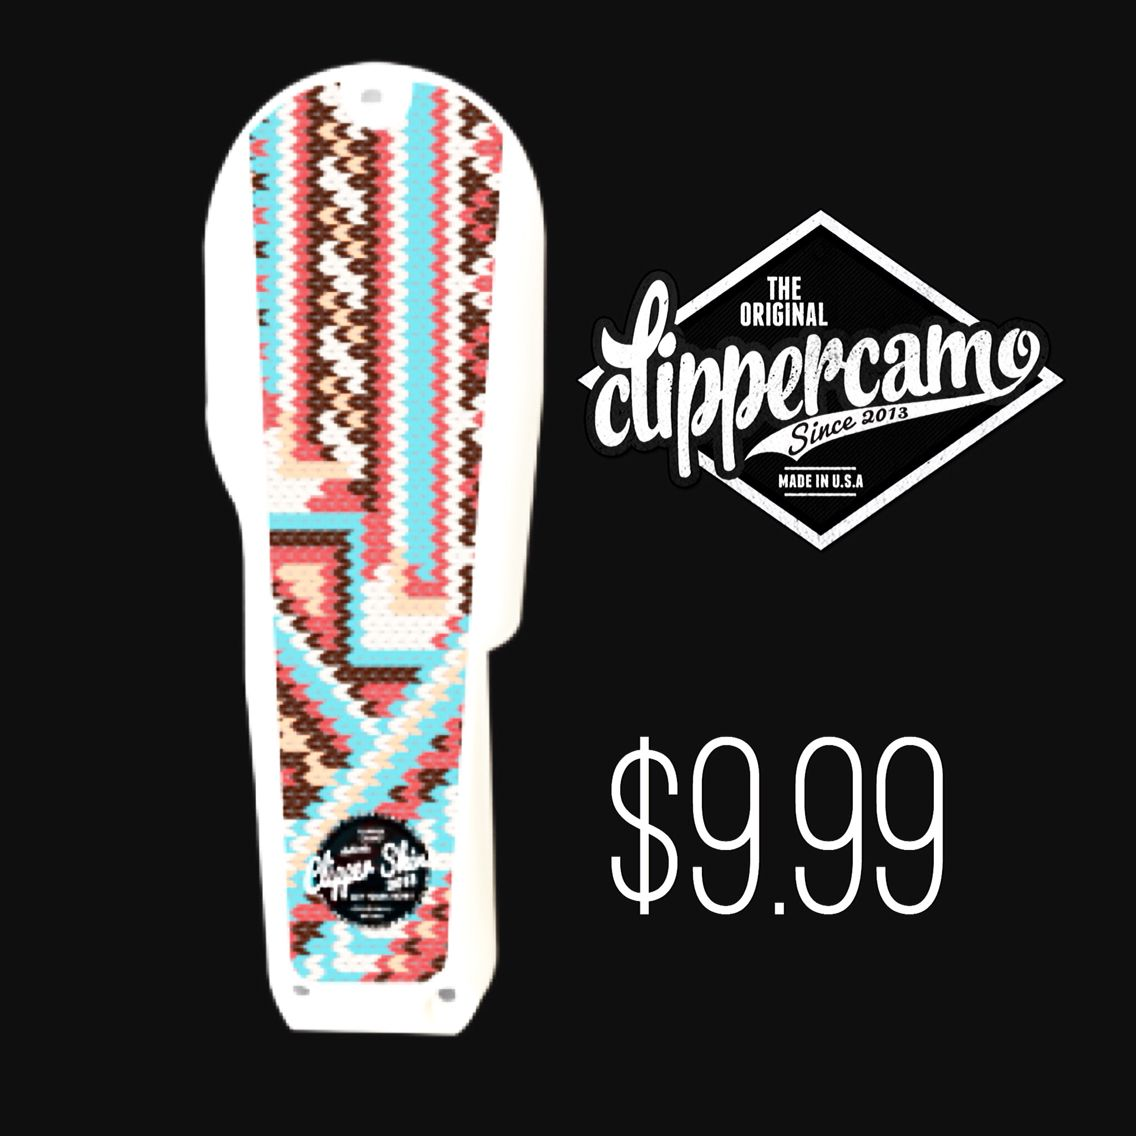 @clippercamo #clippercamo  we ship anywhere across the world!!!!!! www.clippercamo.com ⏪for ordering.we Wholesale All Products Clippers and Accessories #clippercutting  #fashion   #taper #fade #customclippers  #barber #beauty #btcpics #barbering #barberlove #modernsalon #rickysnyc #barbershopconnect #thebarberpost #xotics  #therealbarberconnect #hair #hairdresser #hairstylists #hairdressermagic  #barbers  #barberlifestyle  #sportclips  #wahl #beautysupplies #barbershop